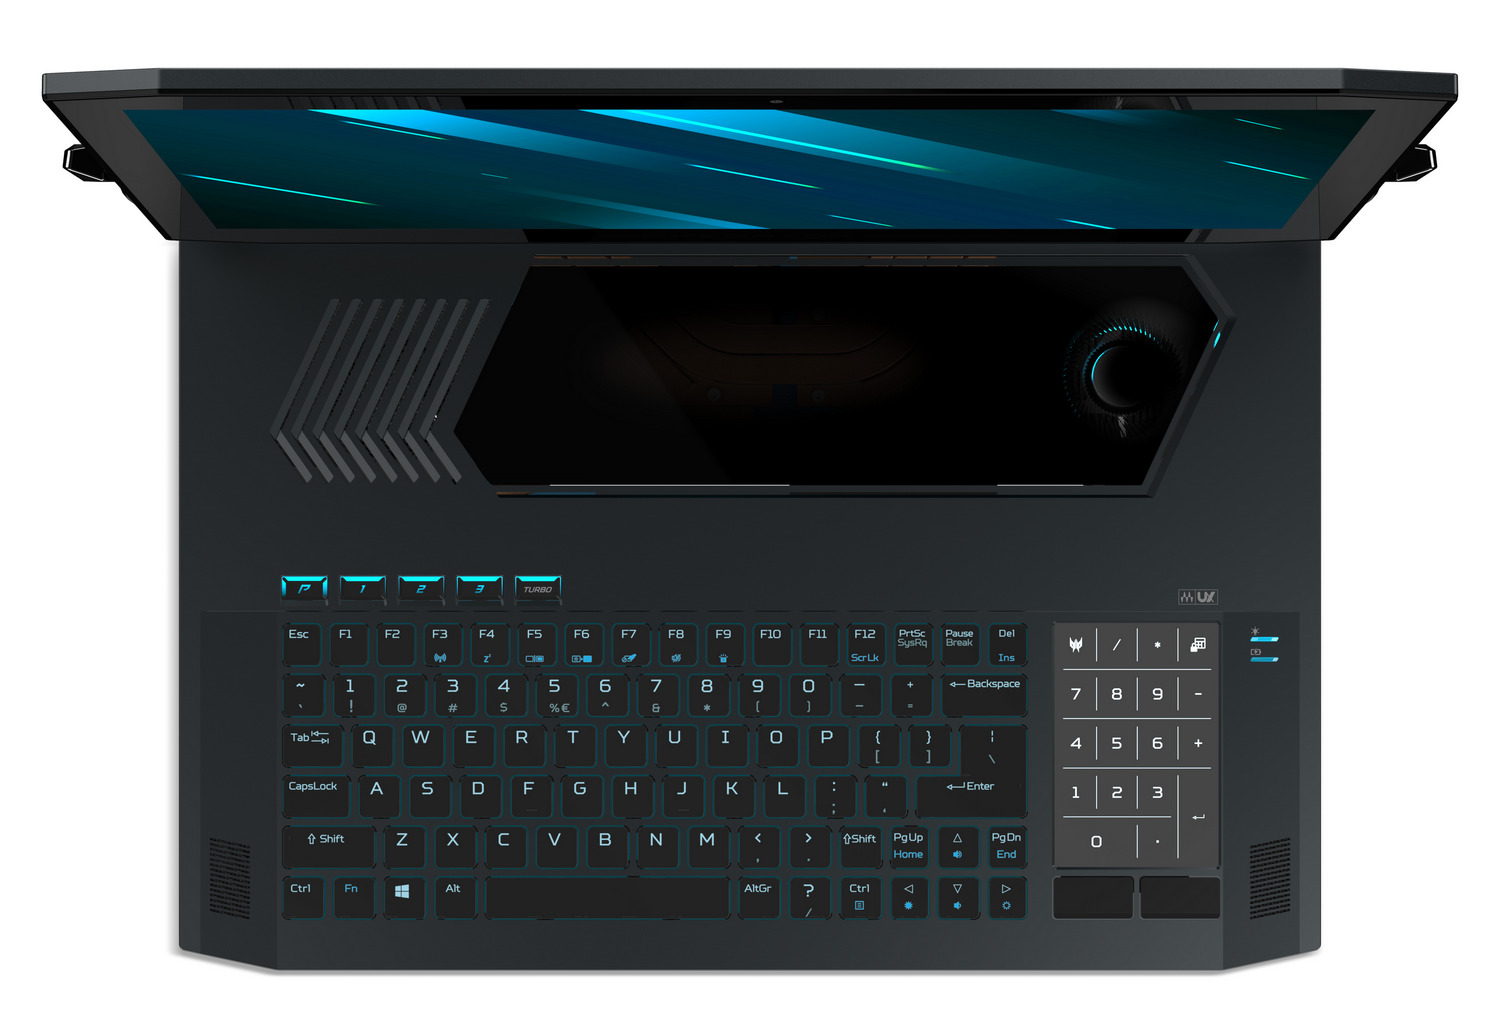 The Acer Predator Triton 900 morphs gaming laptops into something new